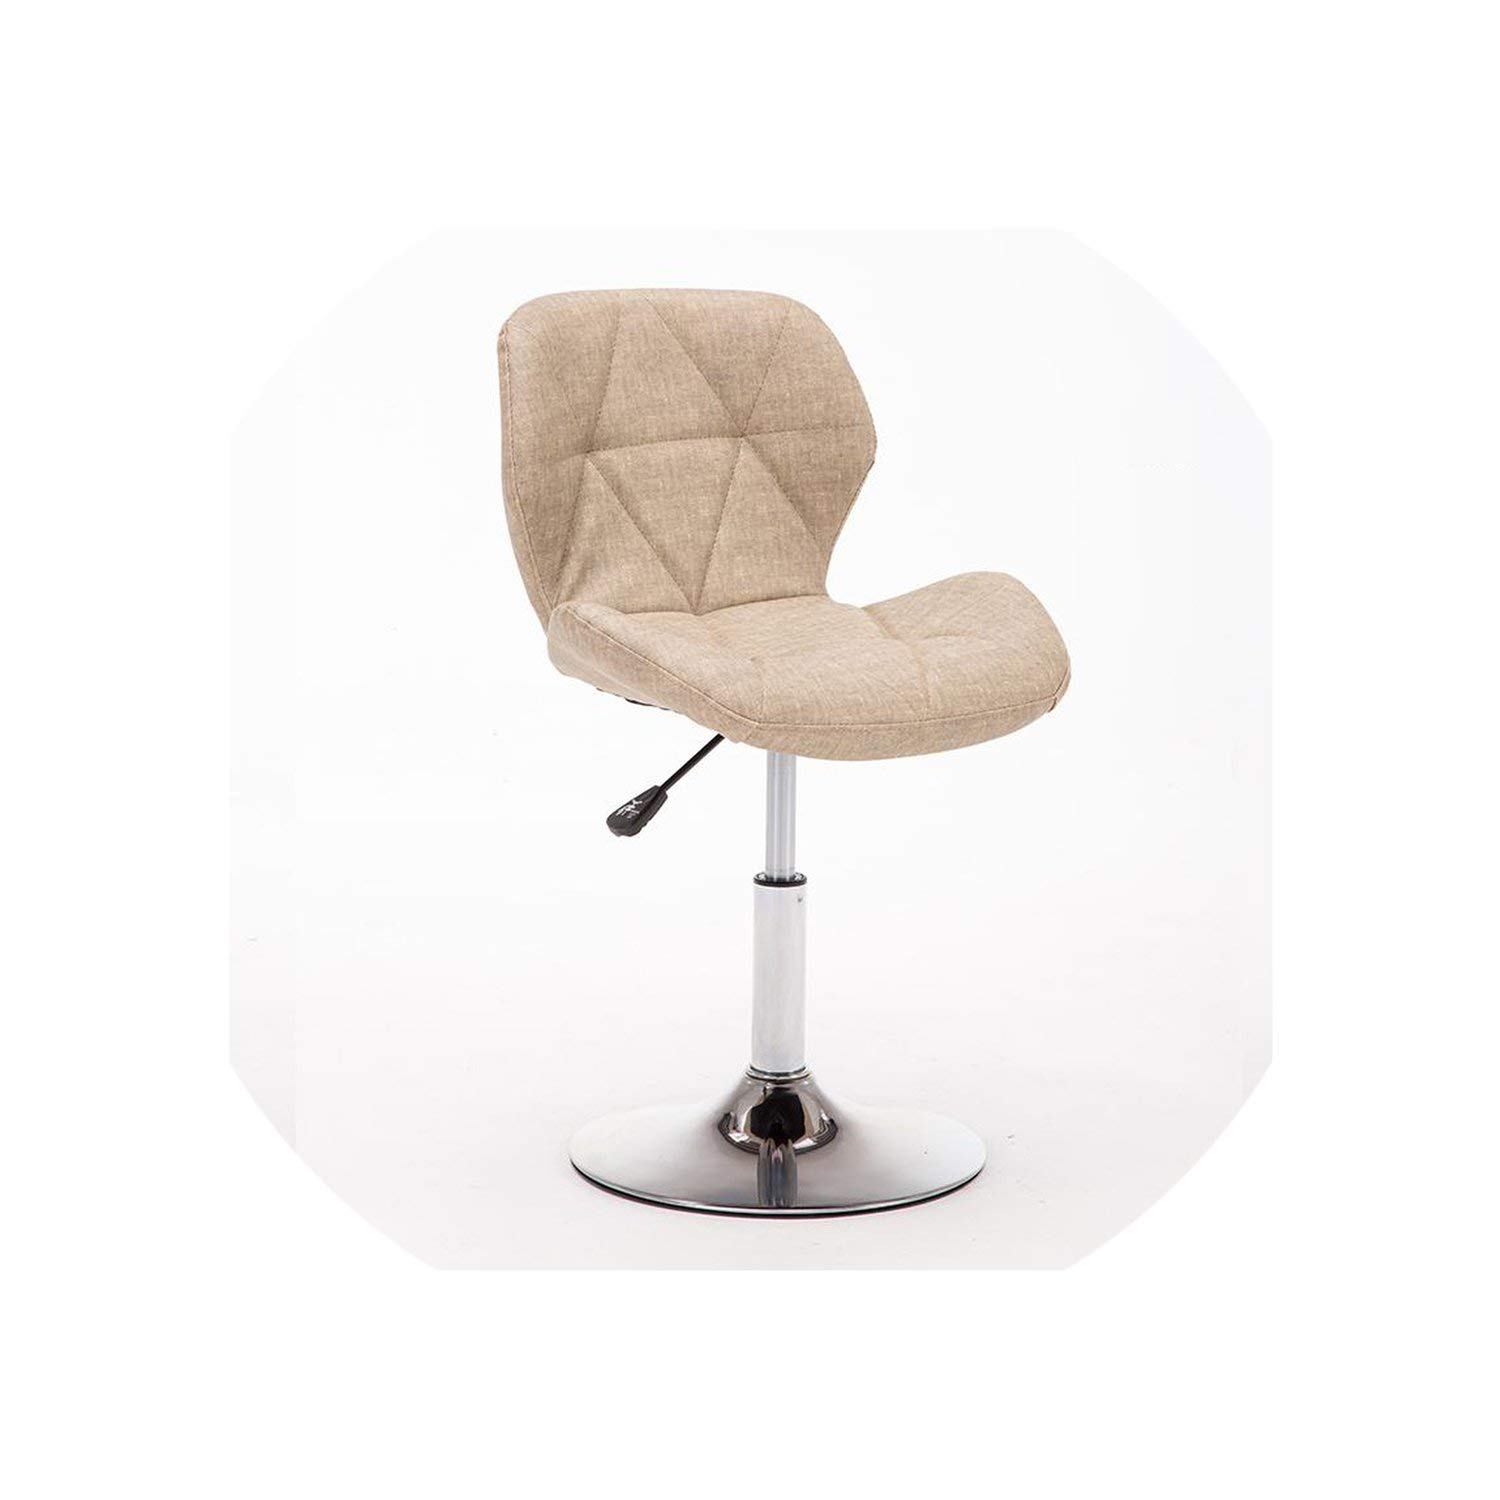 Style 21 tthappy76 New Bar Stools Bar Chair redating Lift Chair High Stools Home Fashion Creative Beauty Stool Swivel Chair,Style 9